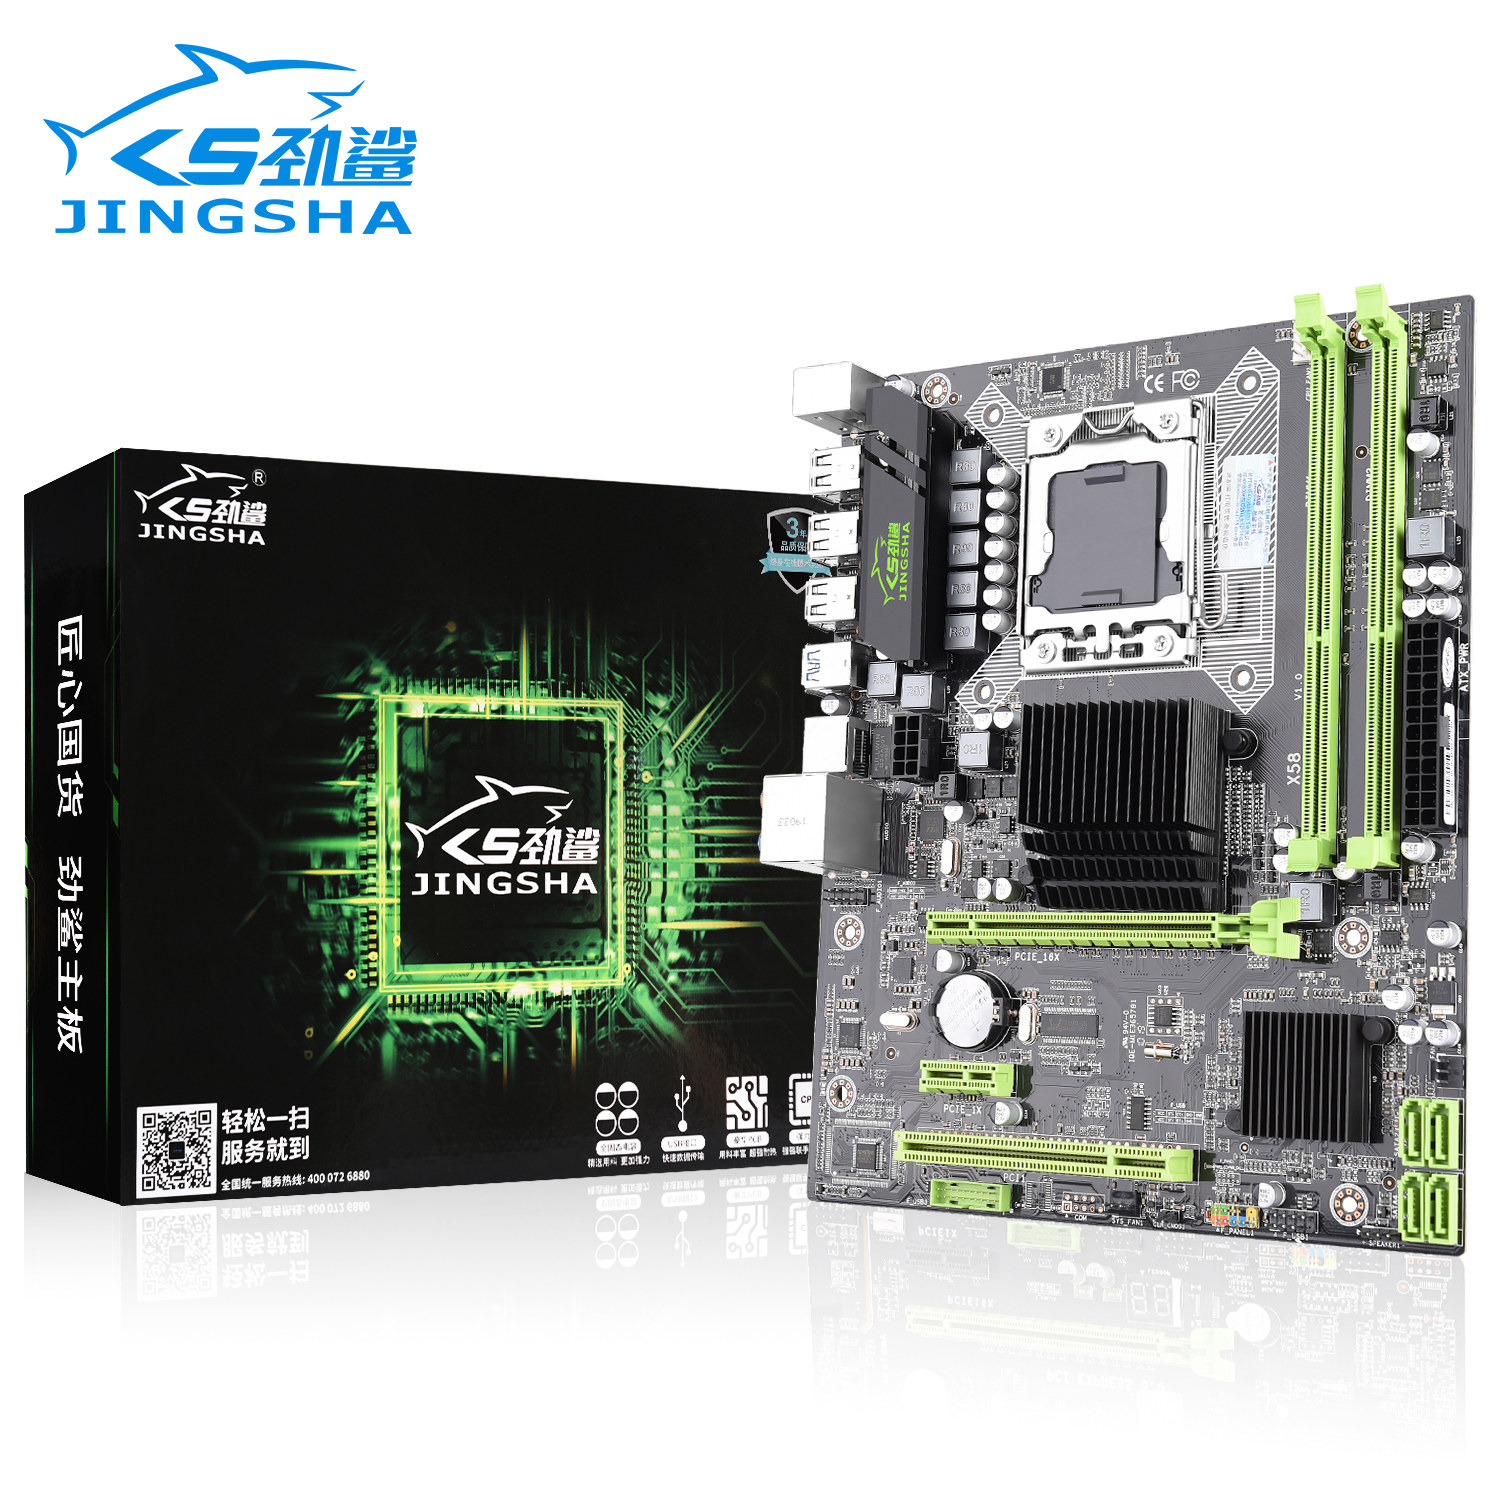 X58 LGA 1366 Motherboard LGA1366 Support REG ECC DDR3 And Xeon Processor USB3.0 AMD RX Series